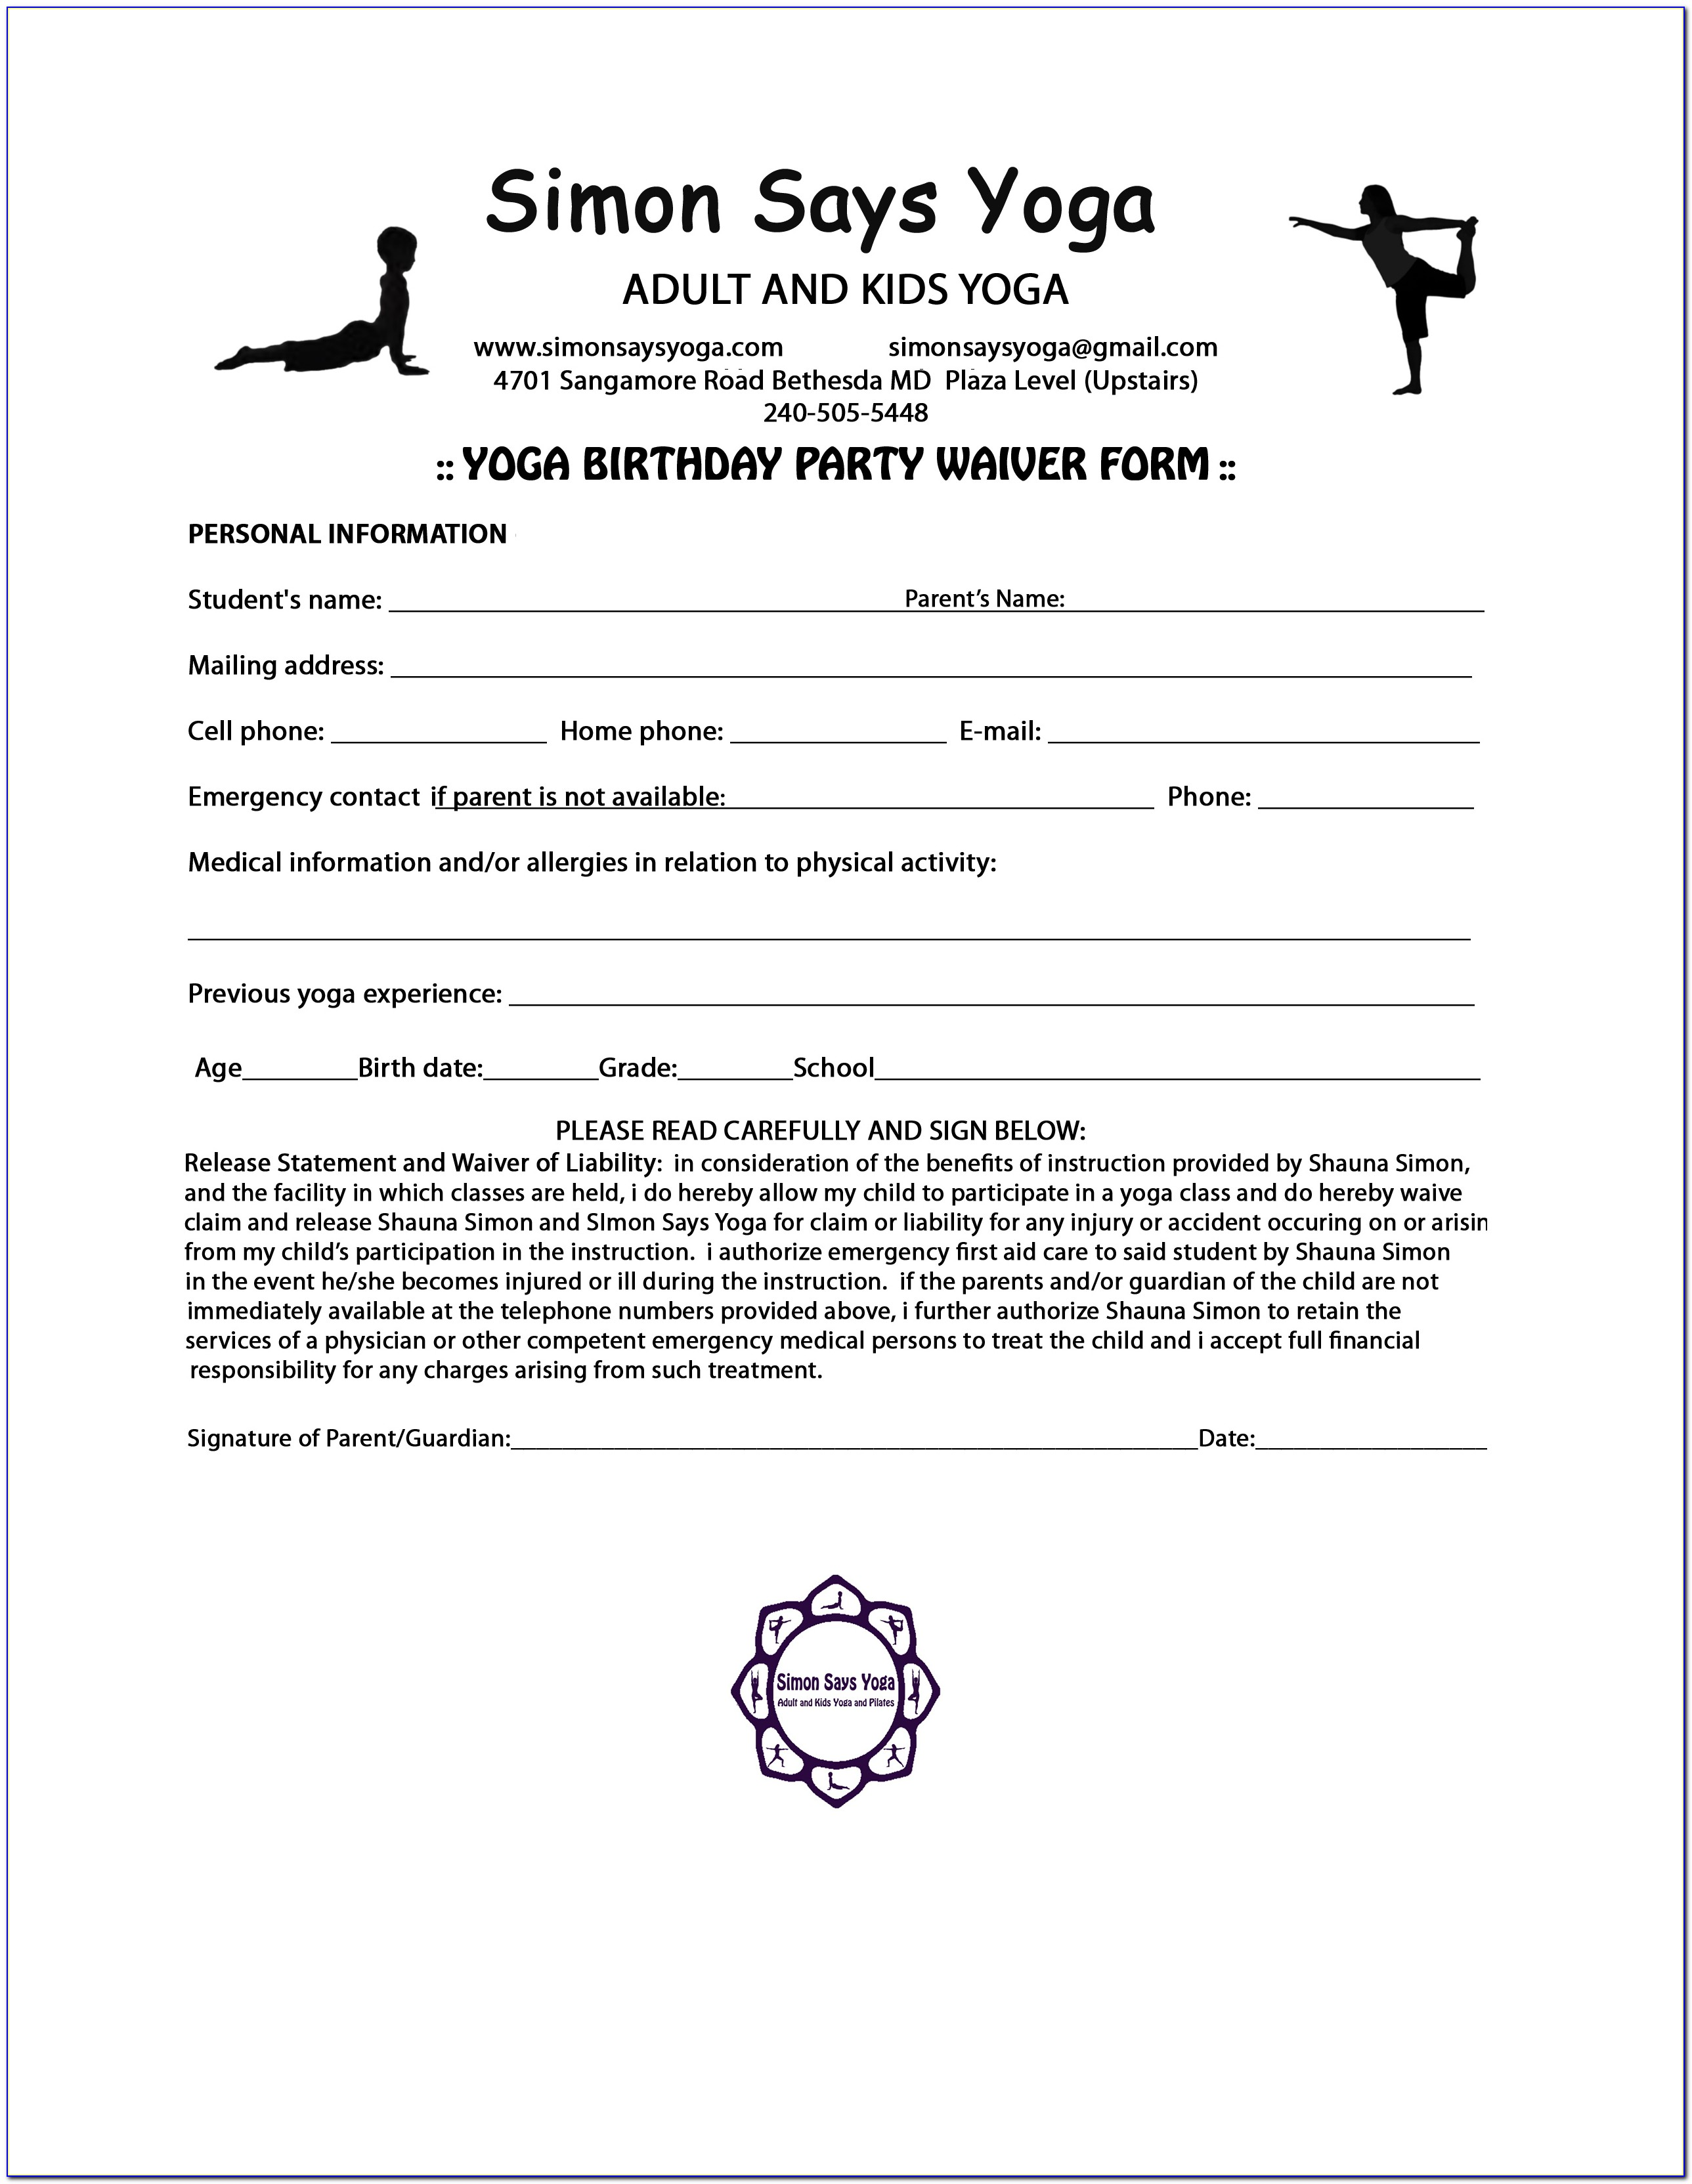 Yoga Waiver Form Template Canada Vincegray2014